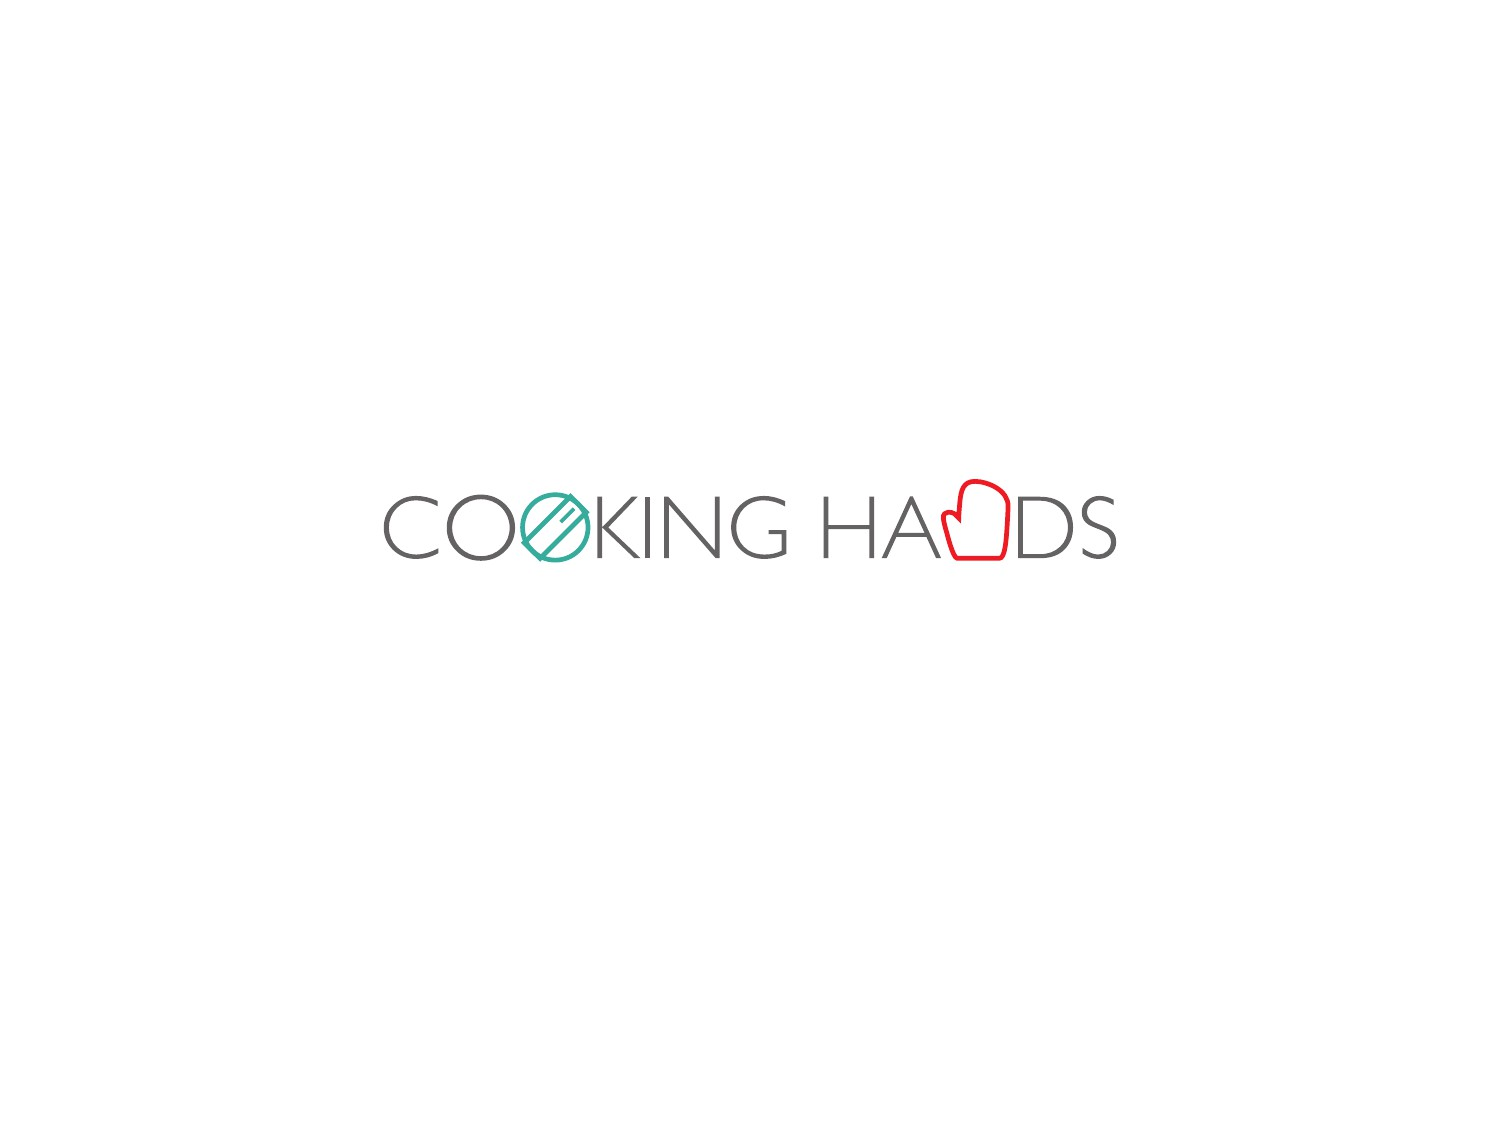 Cooking Hands Vi Full Version 000022